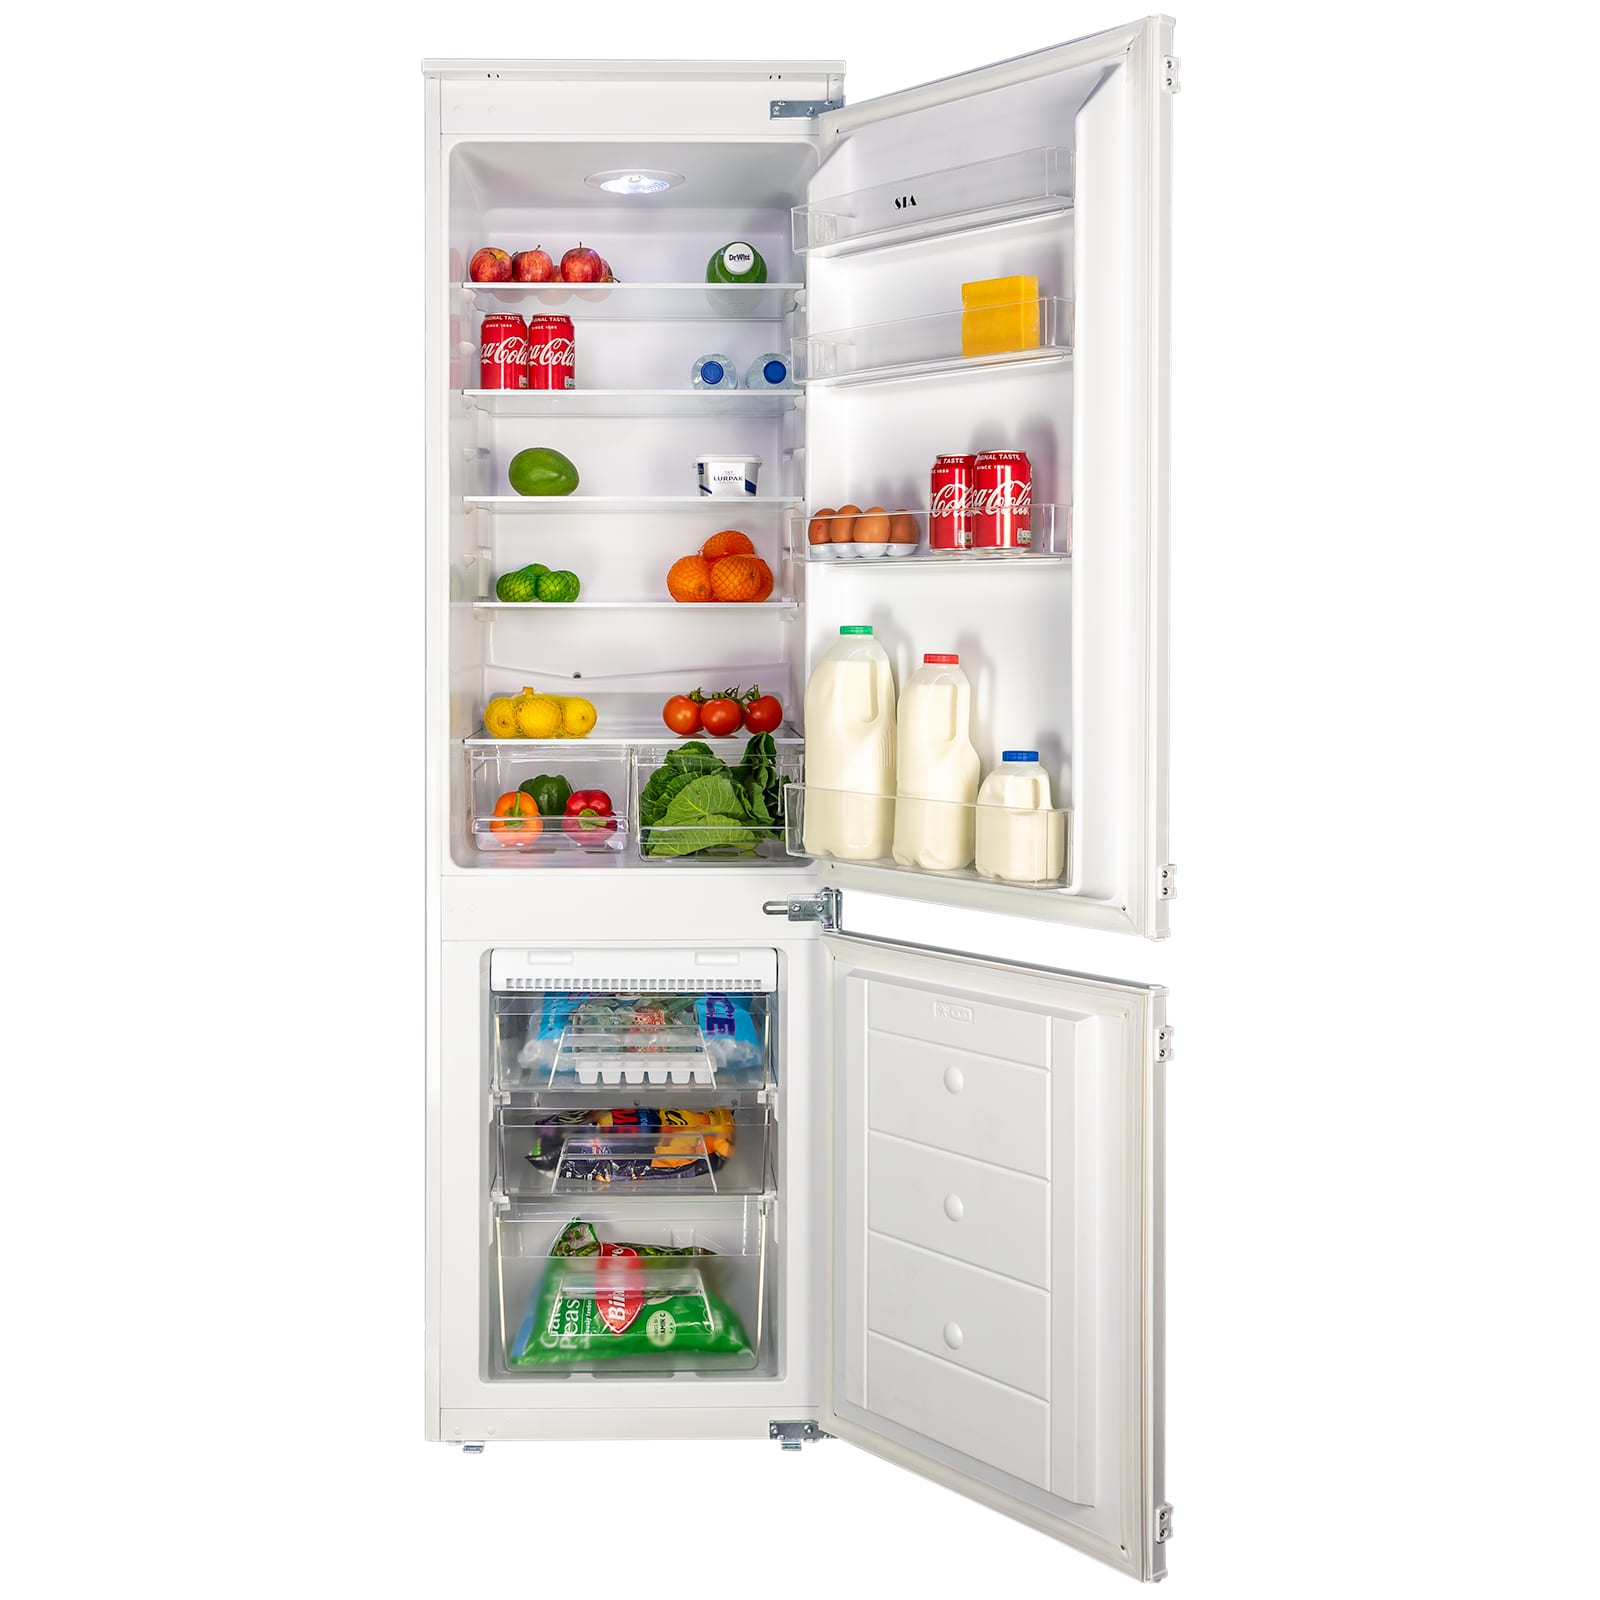 Fridge Freezer Sia Rff101 70 30 White Integrated Built In Frost Free Fridge Freezer A Rating